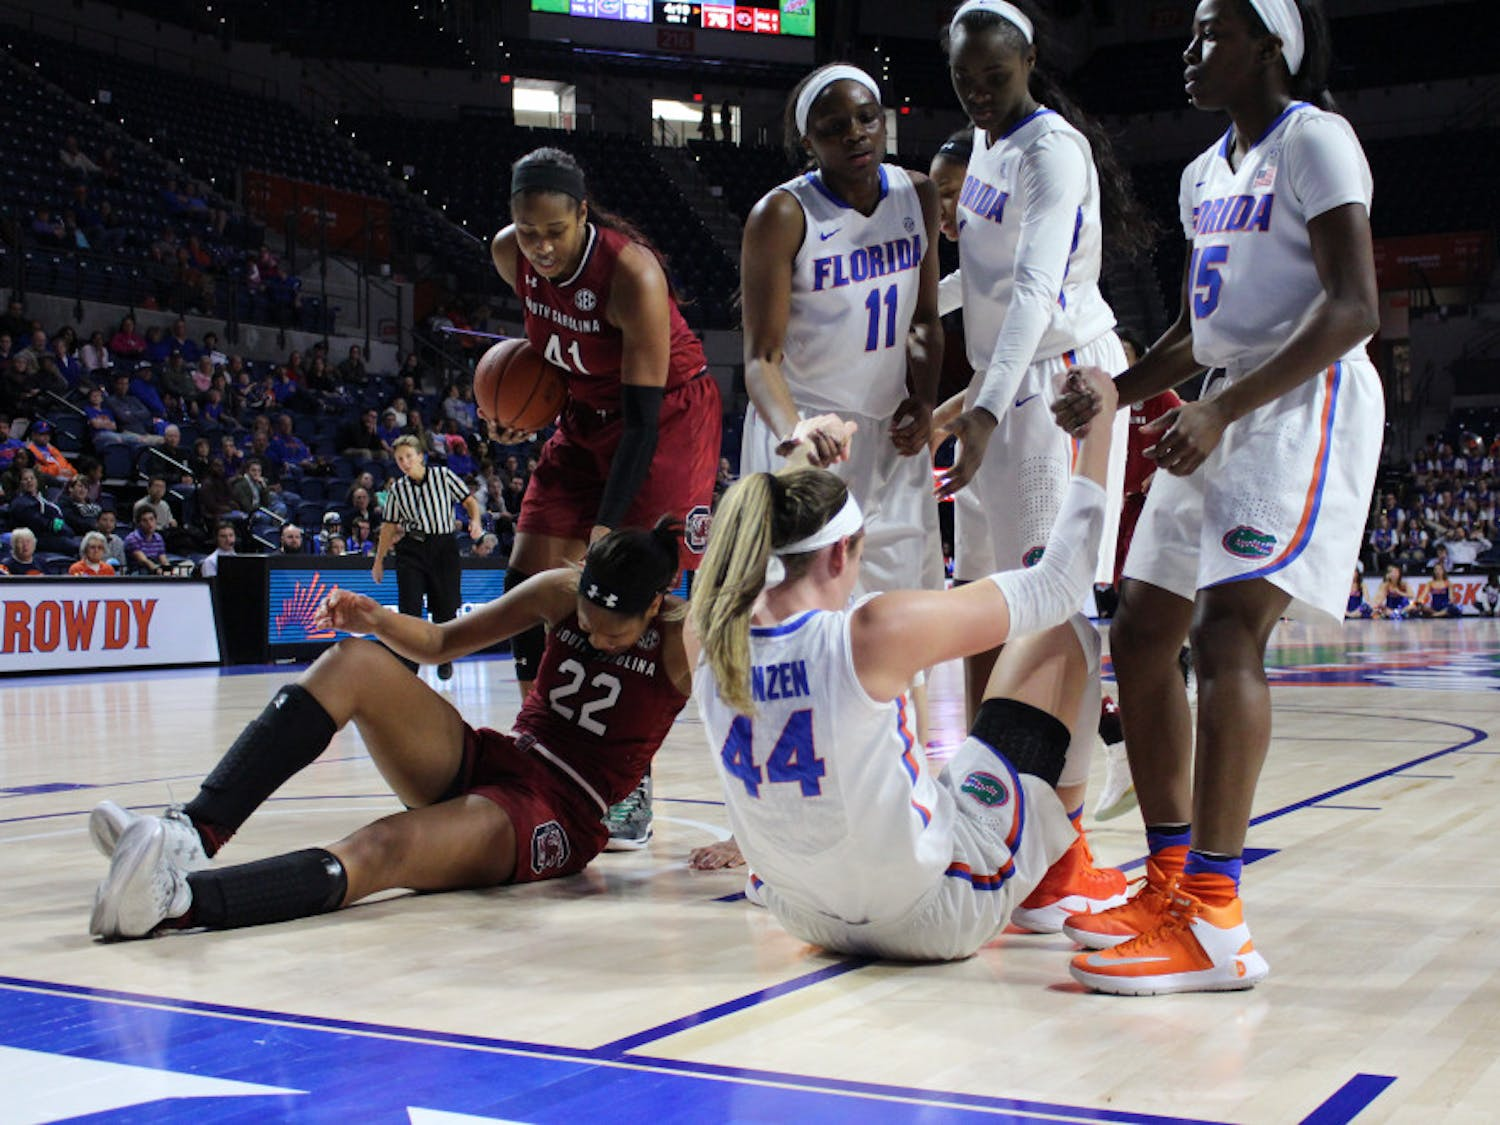 Nearly eight months after he was hired to replace ousted coach Amanda Butler, Cameron Newbauer is set to test his offensive game plan Saturday afternoon at 4 when the Gators women's basketball team takes on Georgia State at the O'Connell Center.